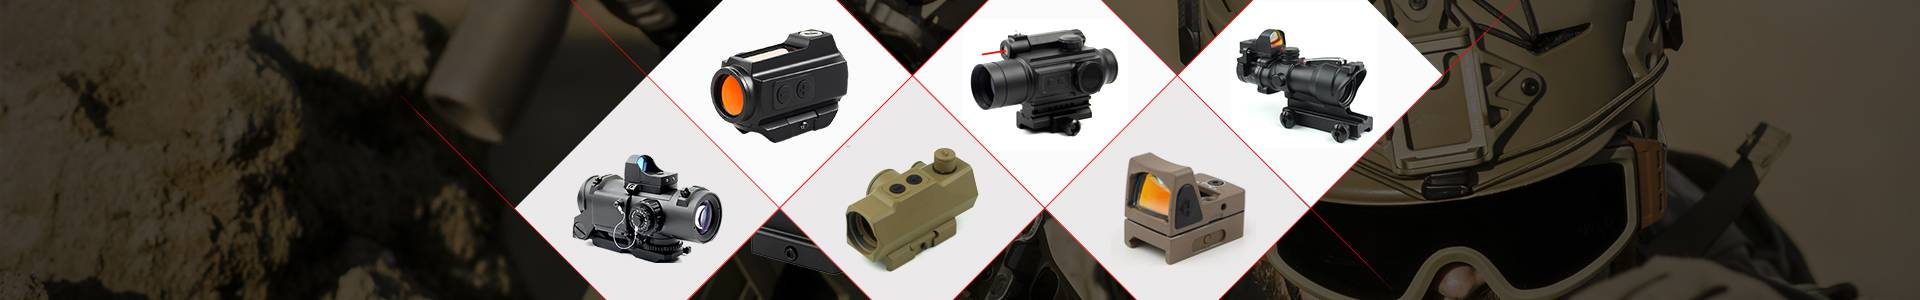 Long Xiang Optics-High Quality Holographic Red Dot Sight 2 Moa Red Dot Sight - page 2